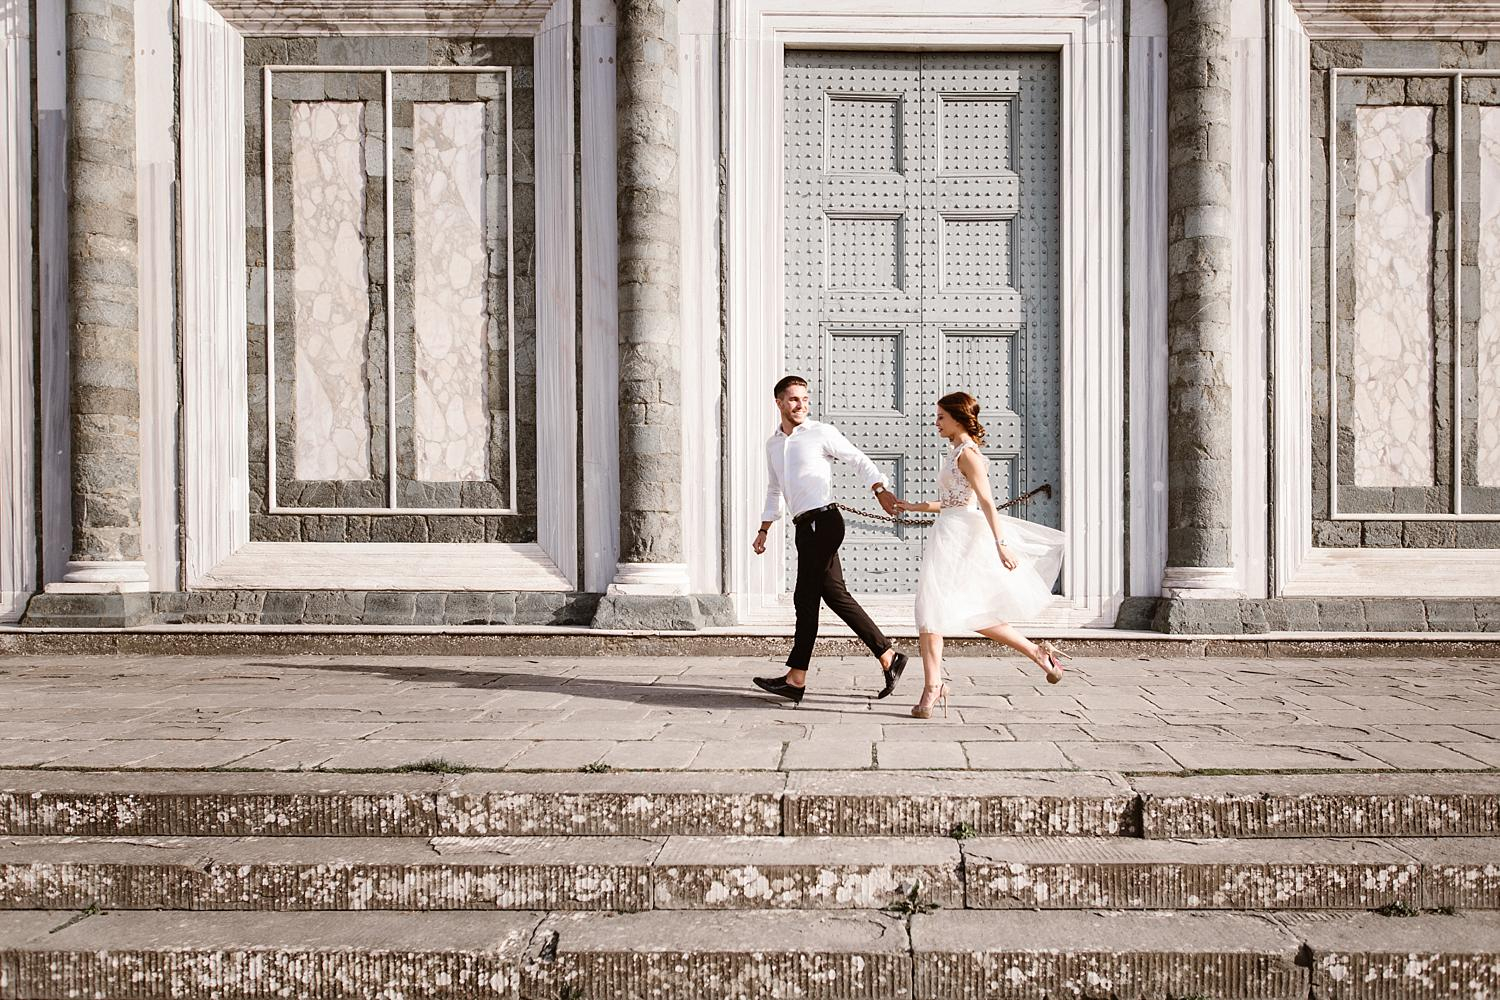 weddingphotographer florence 31 - Maddalena & Arturo - A Chic Anniversary Session in Florence